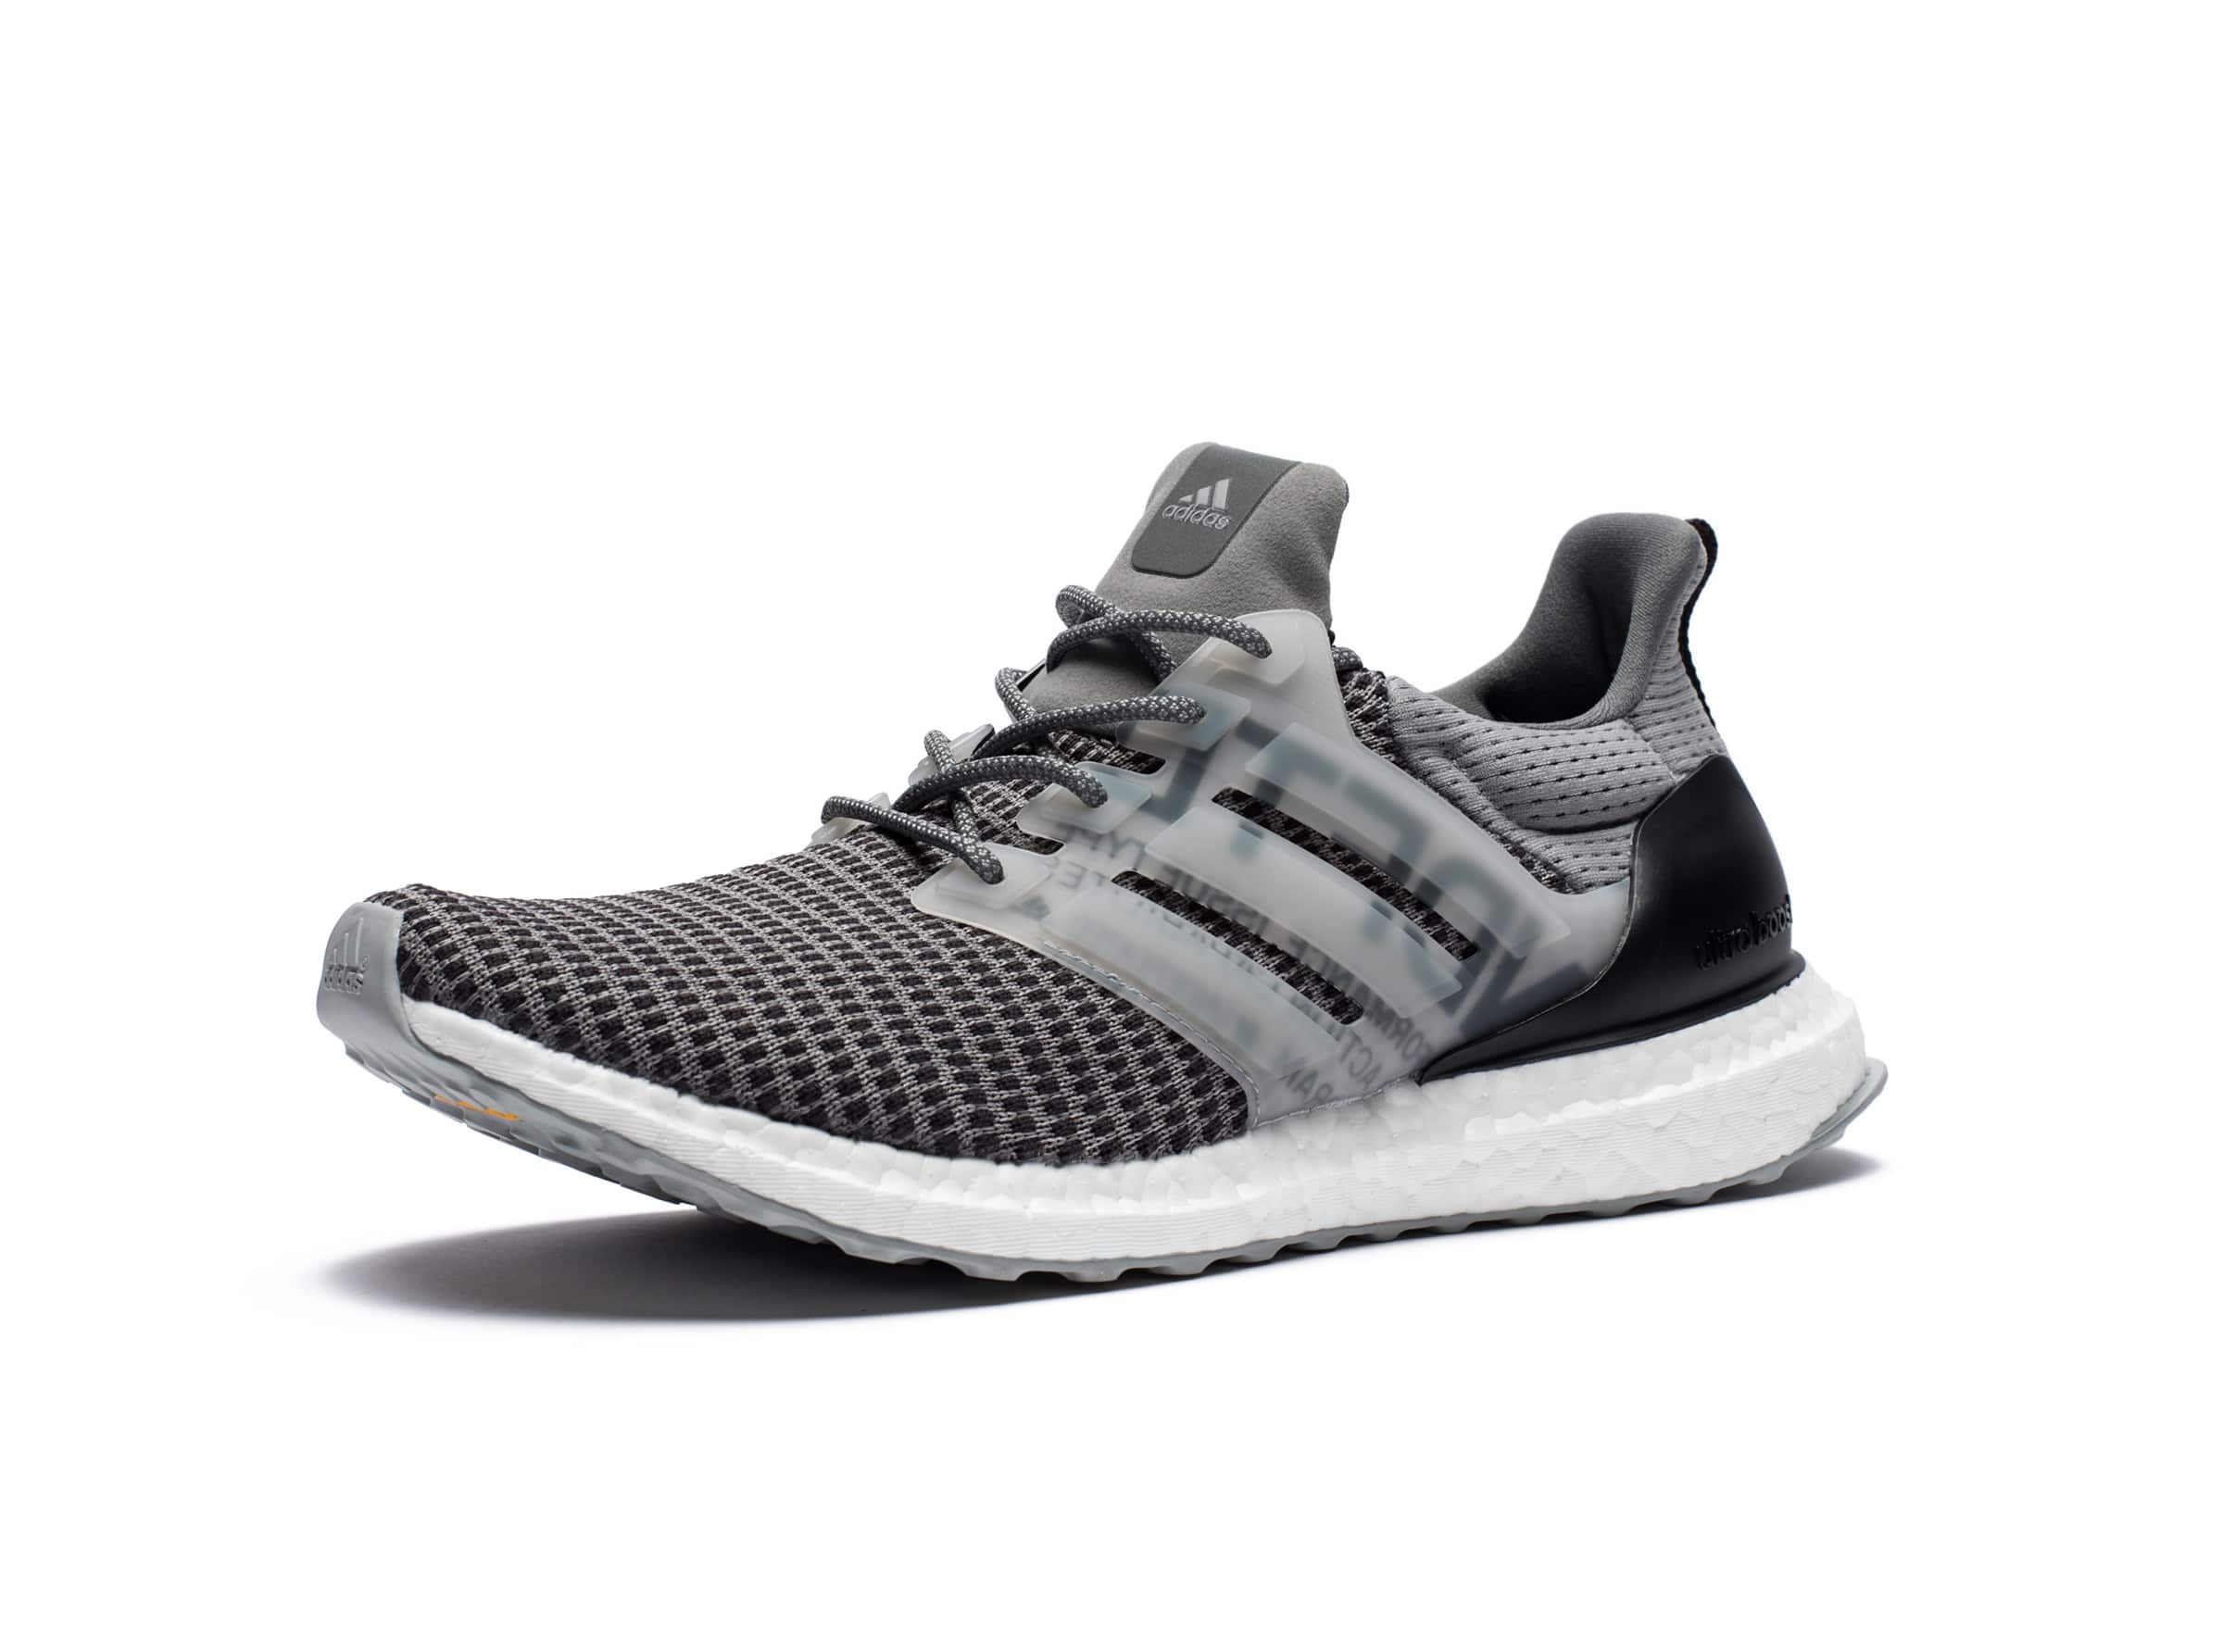 8701d3087 ADIDAS X UNDEFEATED ULTRABOOST - CLEARONIX